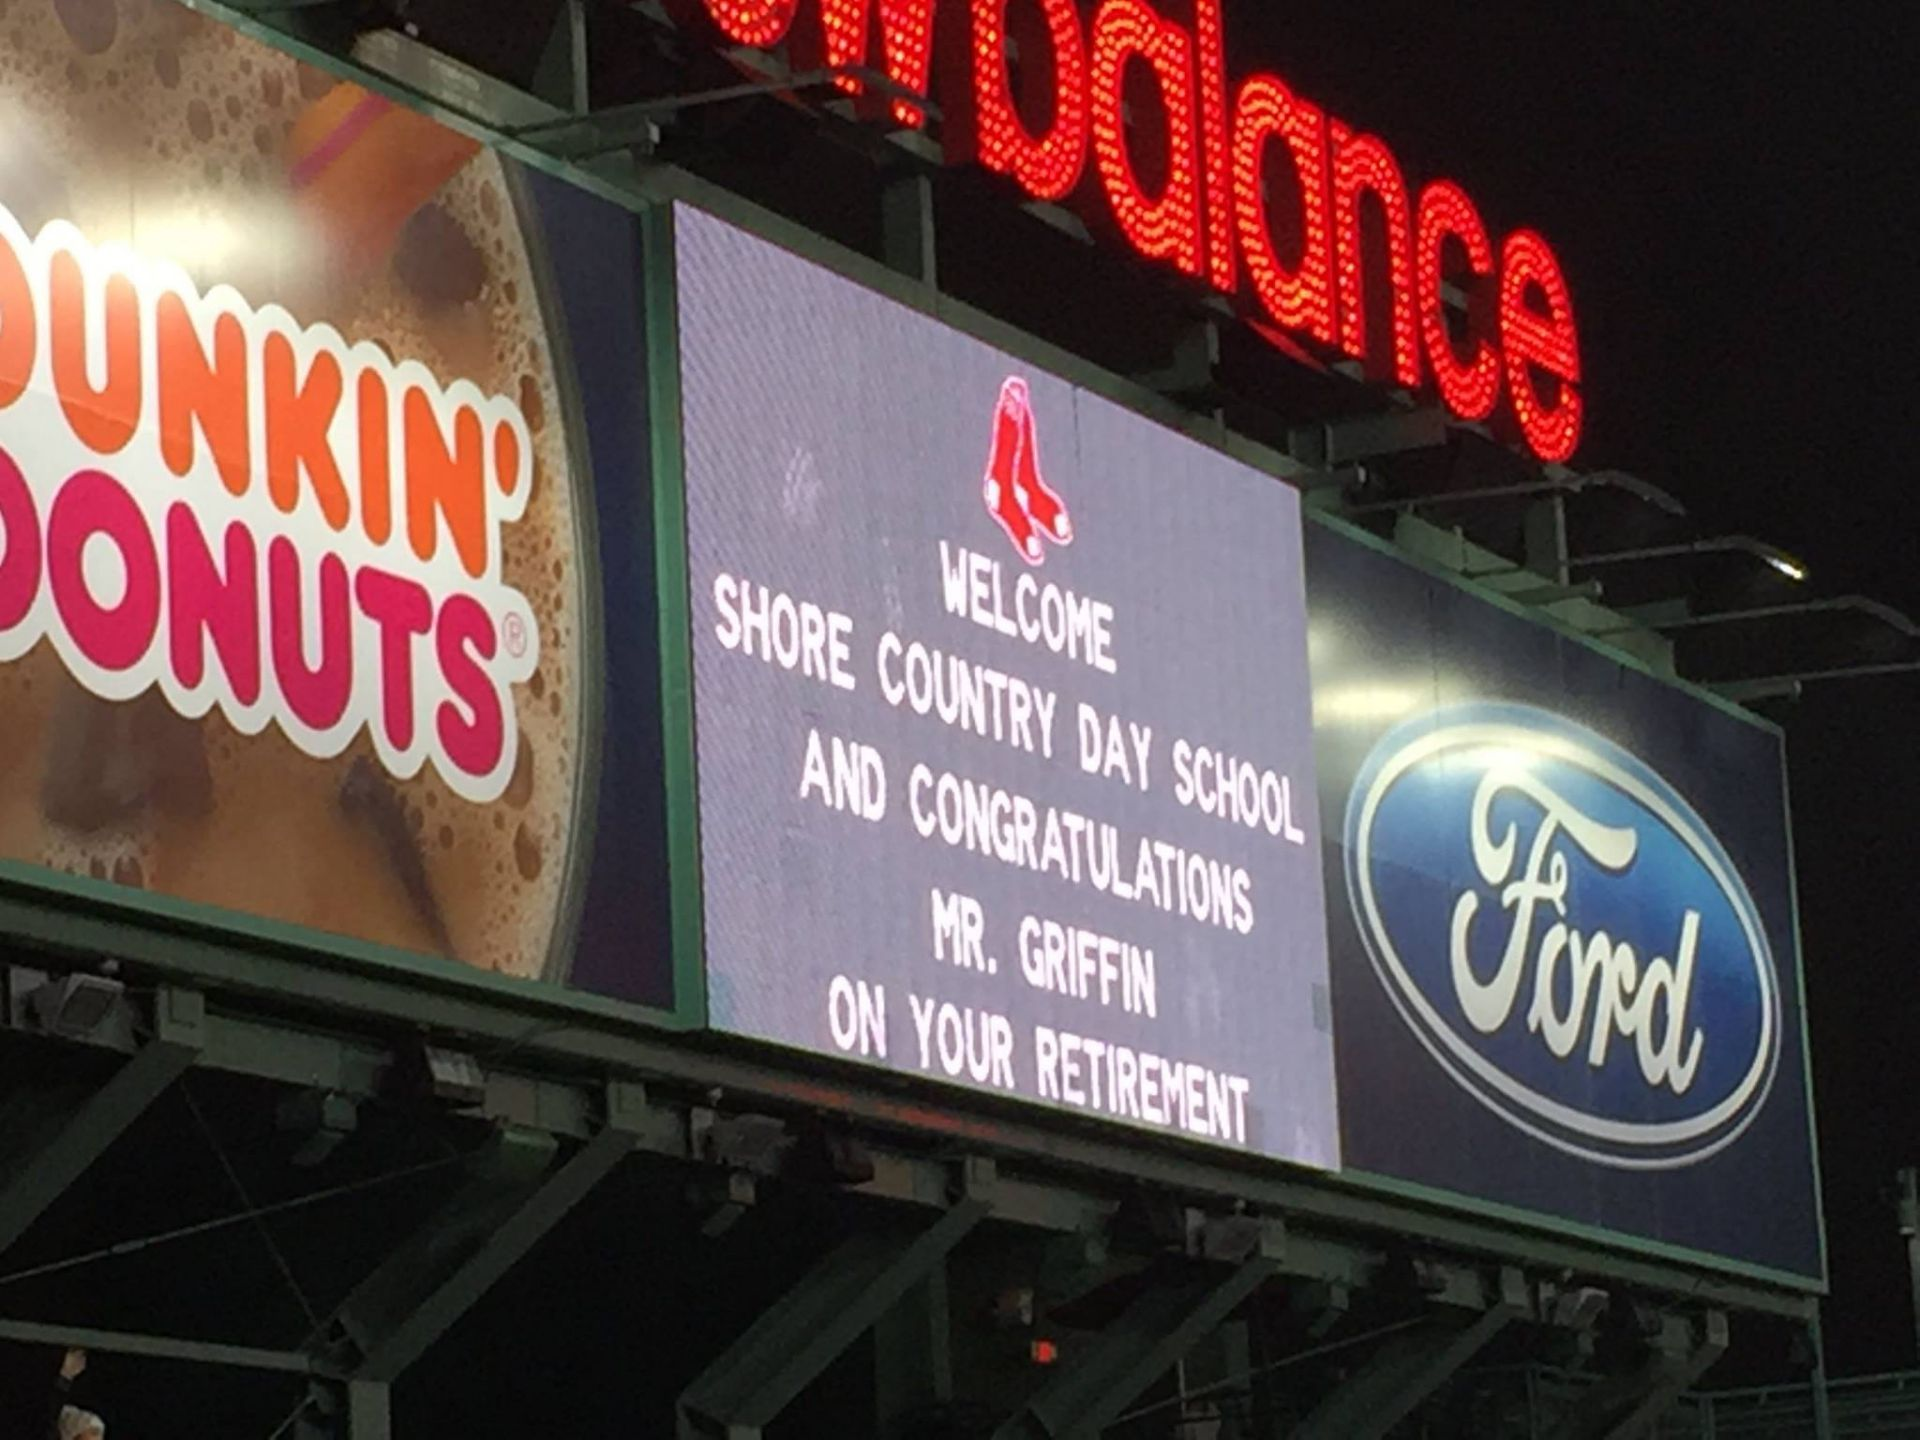 Mr. Griffin's JumboTron message